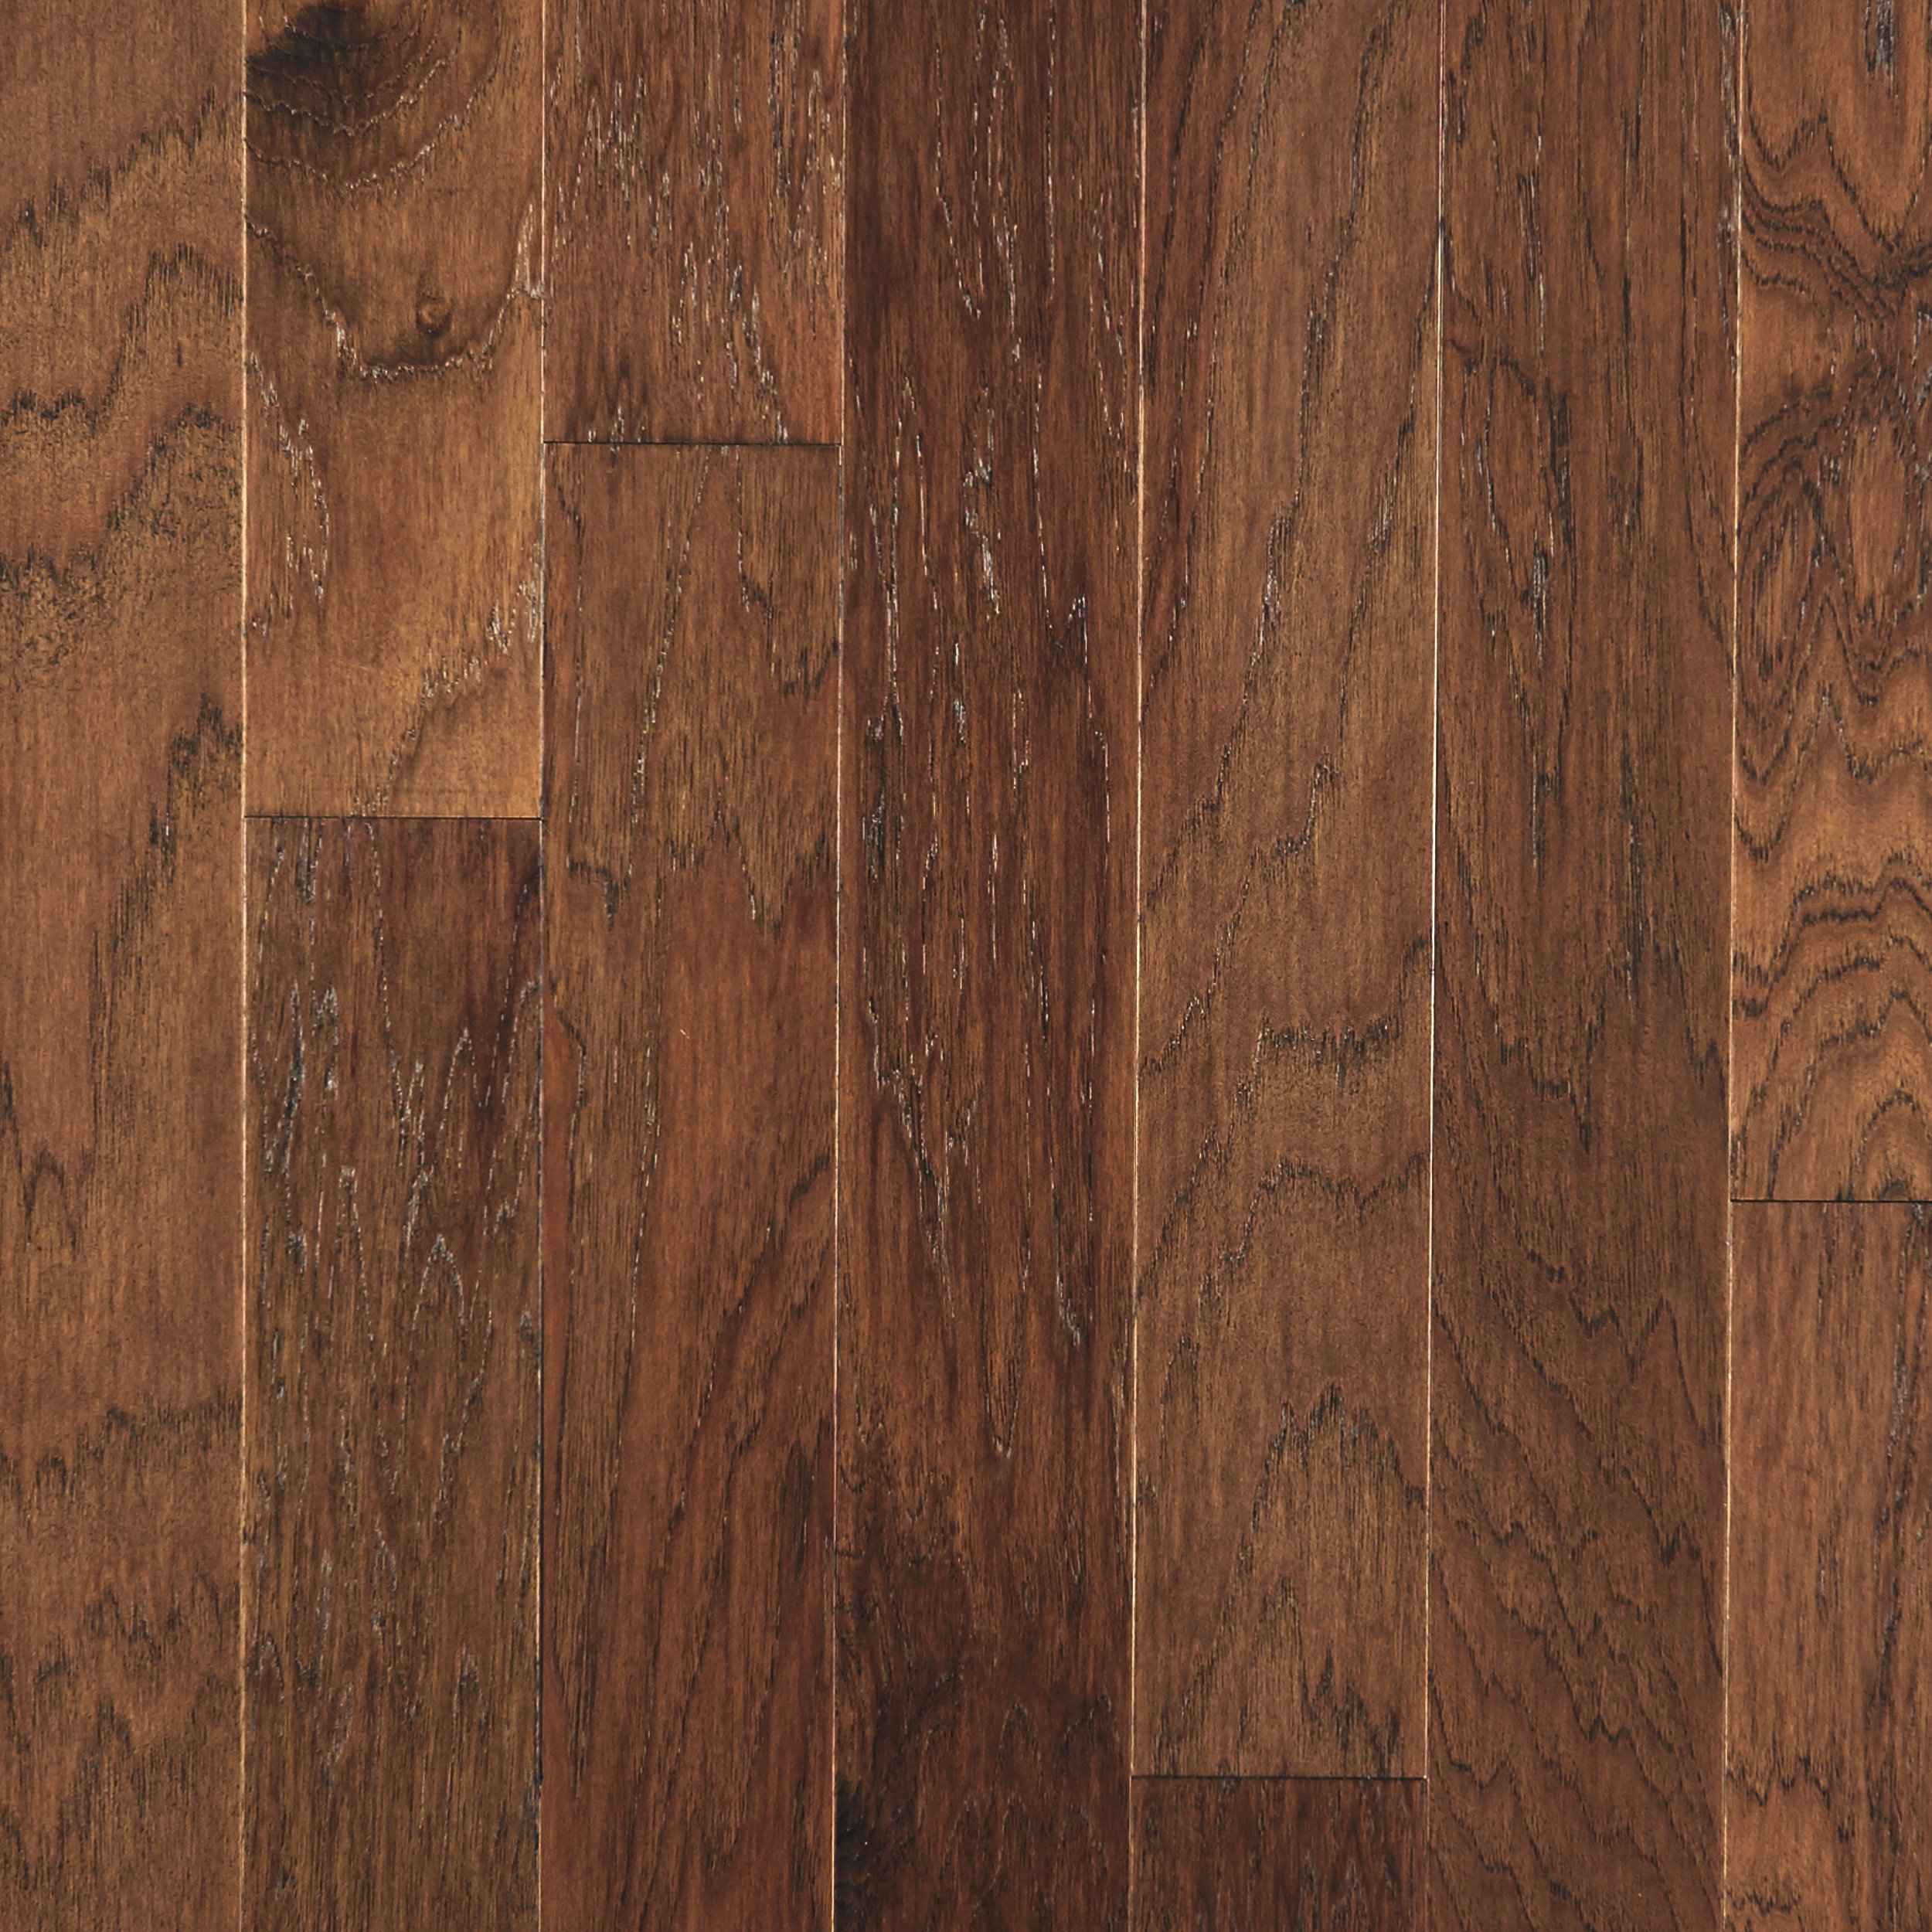 Floor and Decor Engineered Hardwood Fresh Engineered Hardwood Flooring